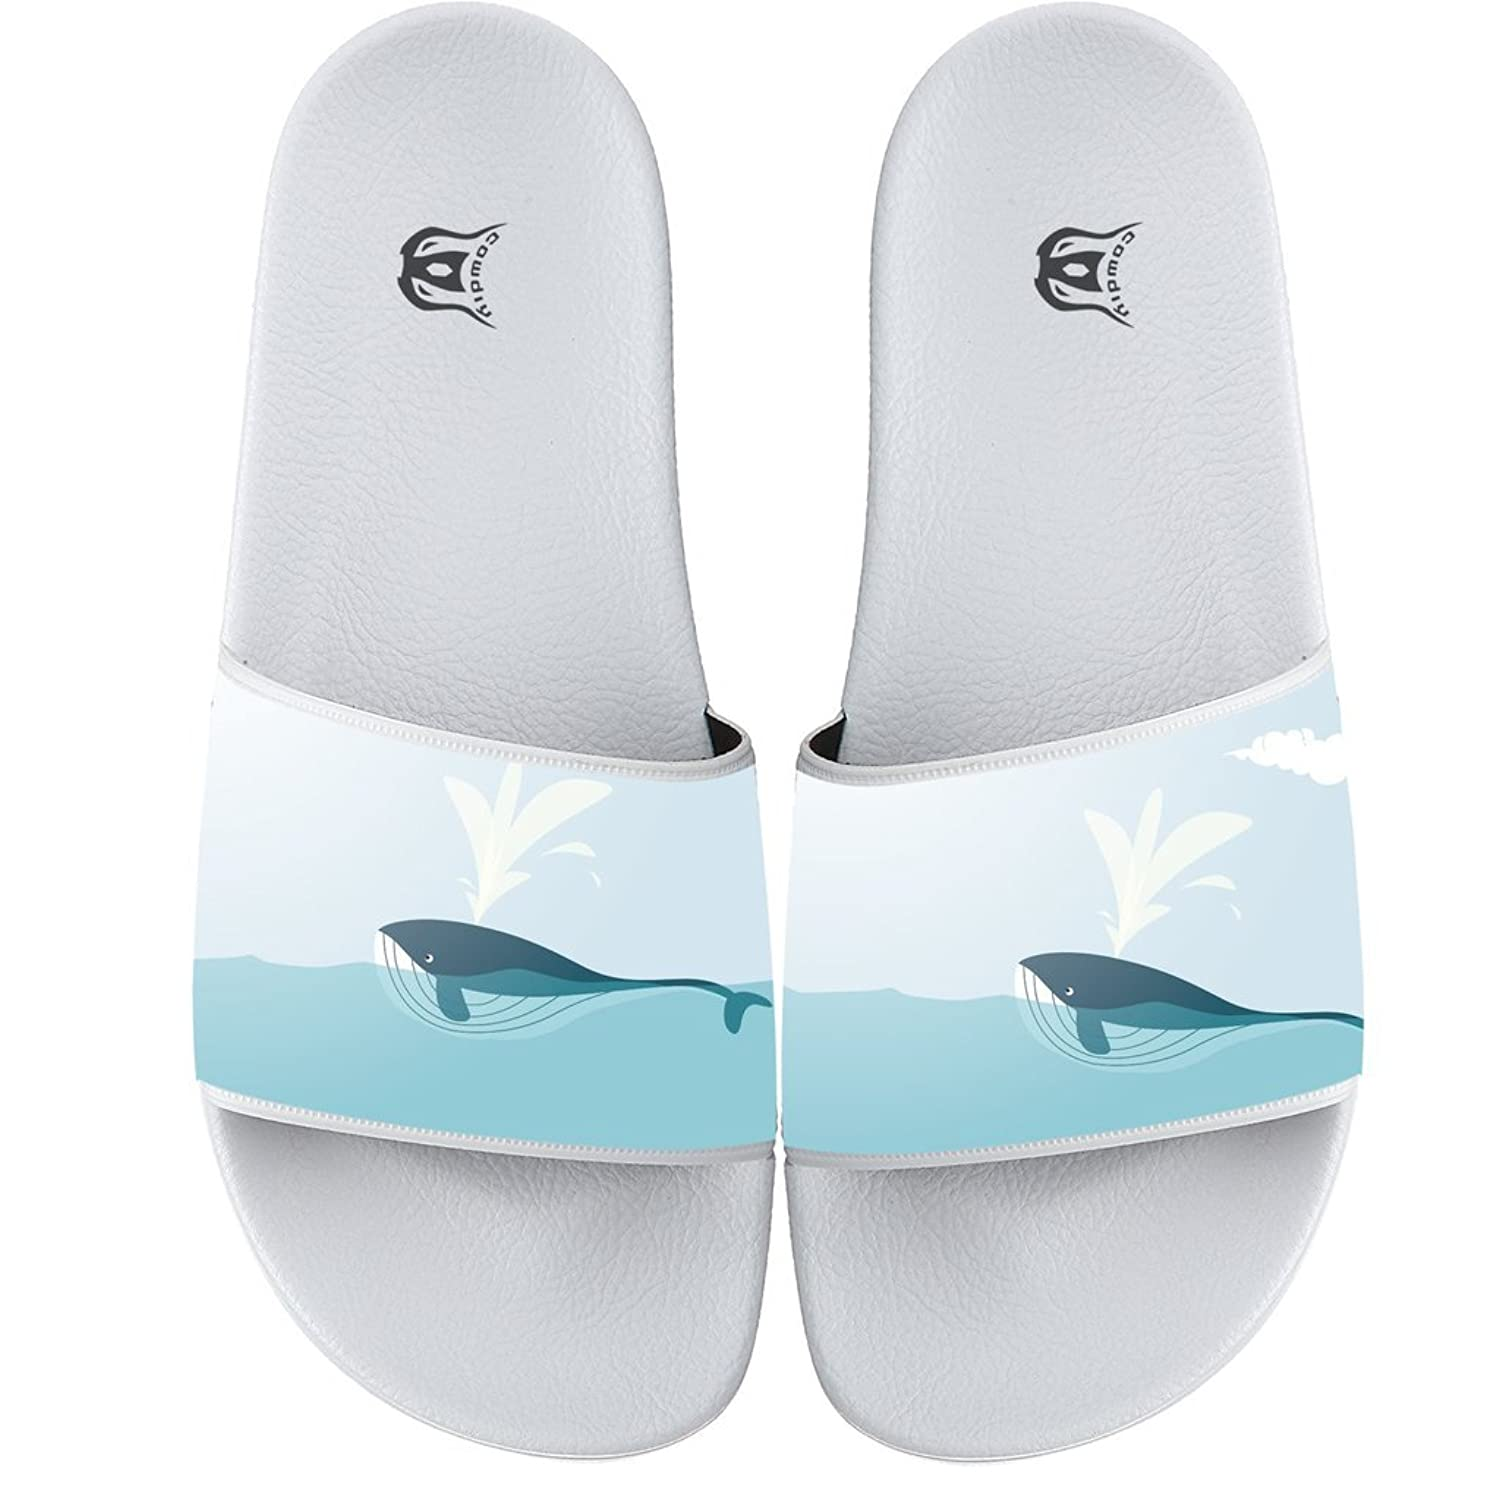 Cute Whale Womens Beach Sandals Travel Outdoor Comfortable Girls Slides Sandal Summer Home Casual Slippers White new